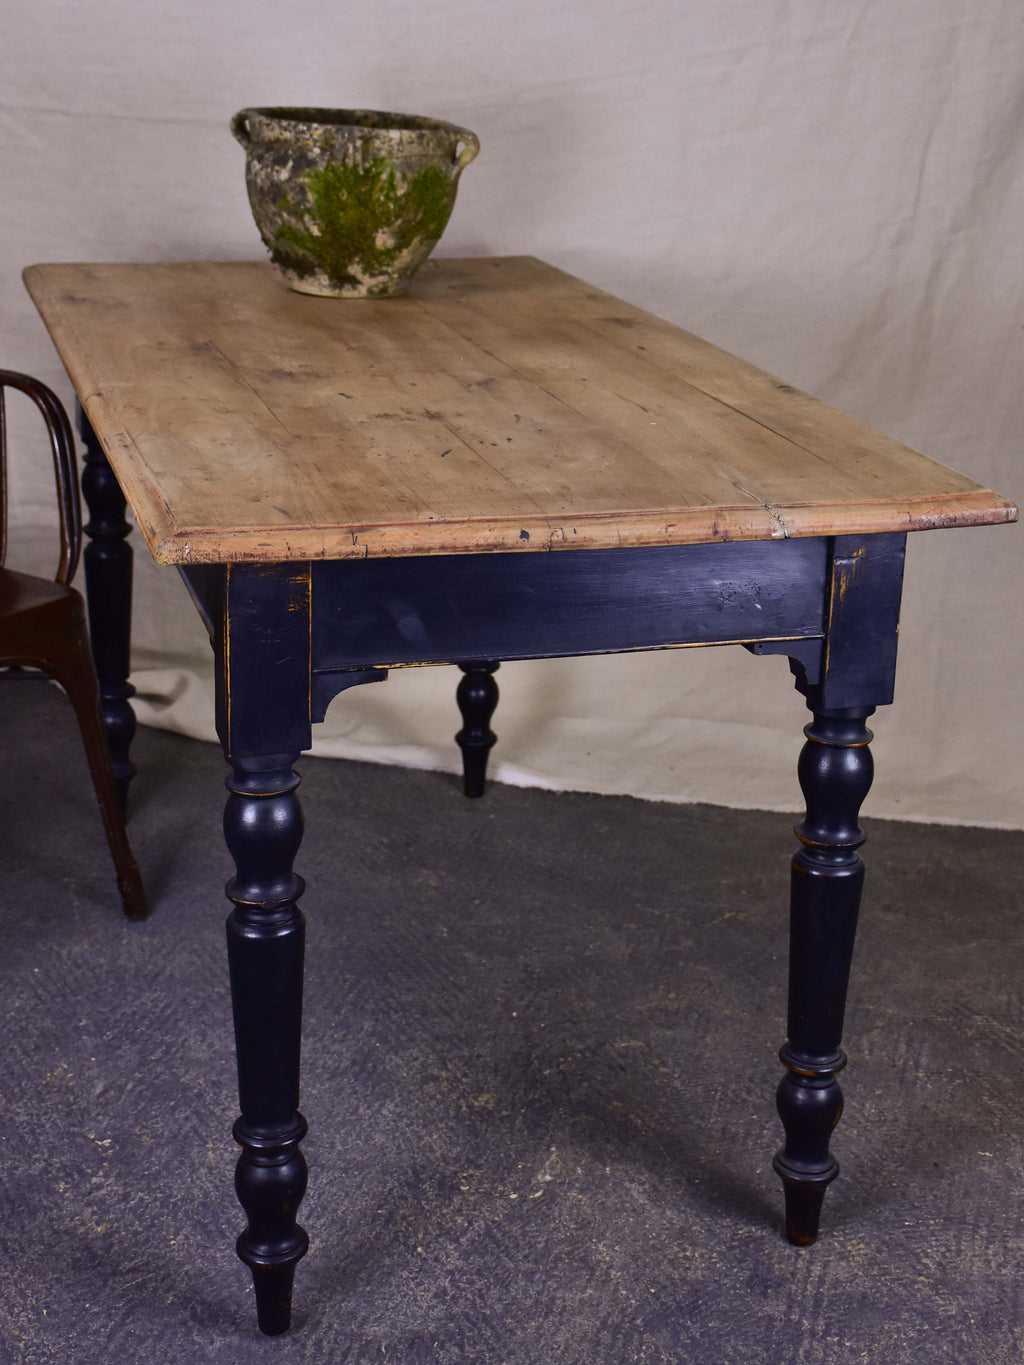 Antique French bistro table - natural timber with black legs